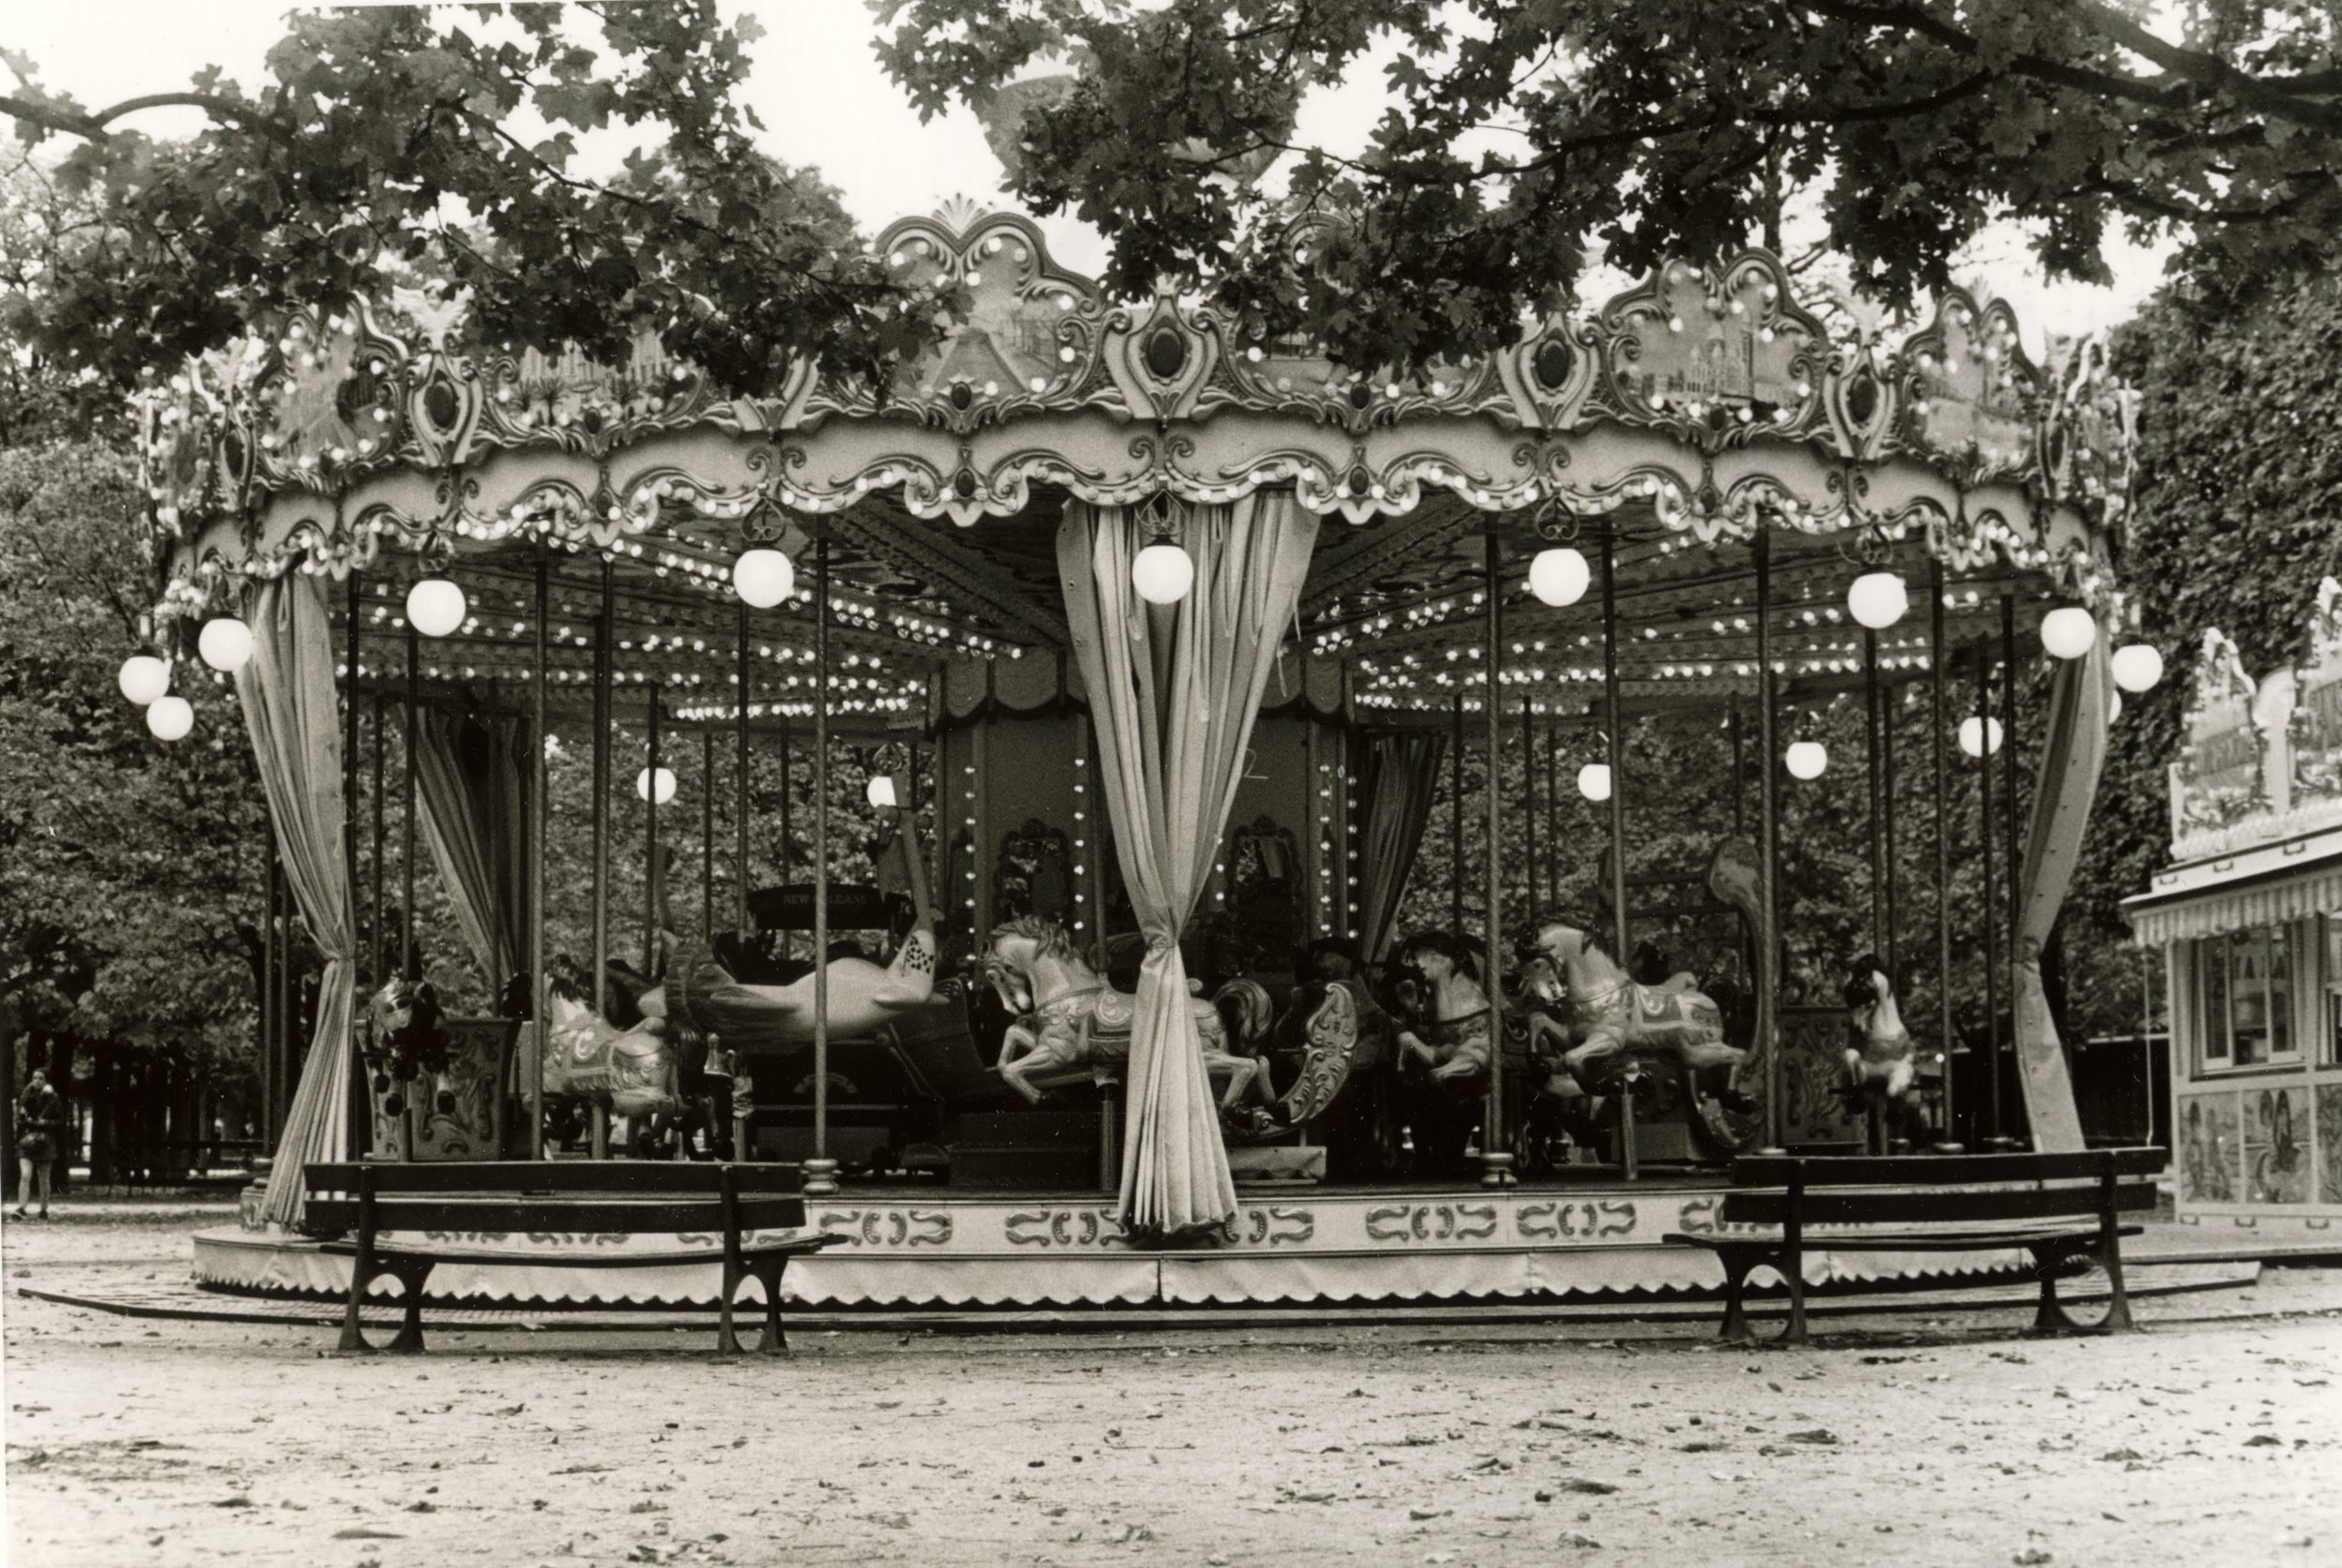 Carousel. Paris. 2018.